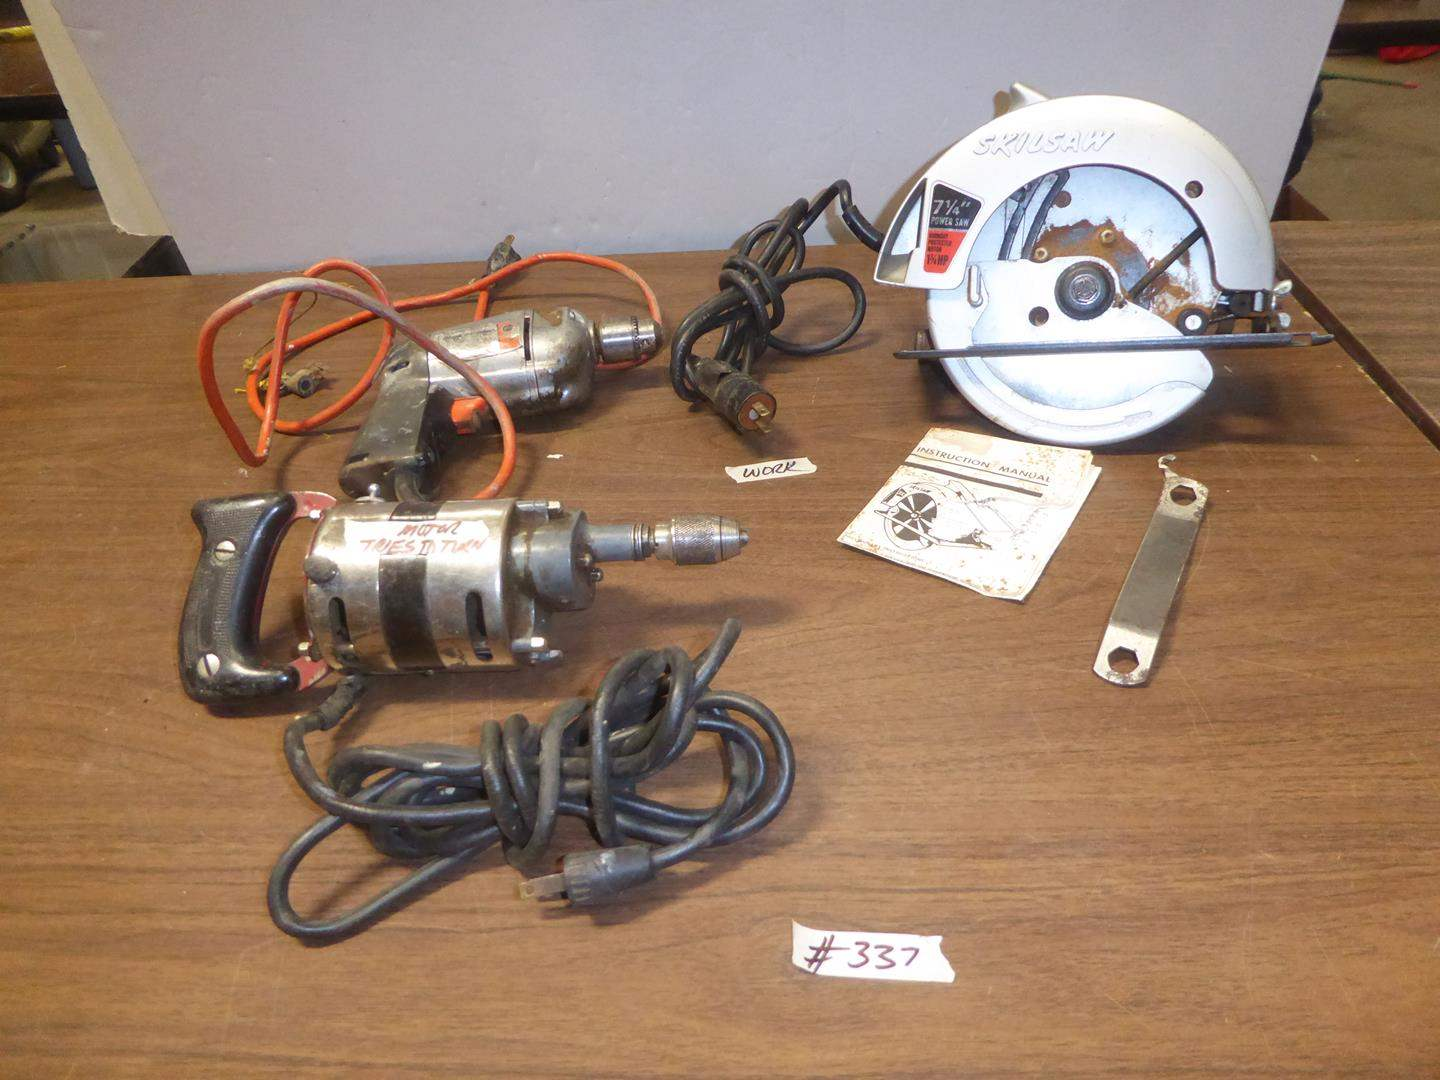 Lot # 337 - Electric Black & Decker Drill, Skilsaw Circular Saw & Vintage Drill (main image)